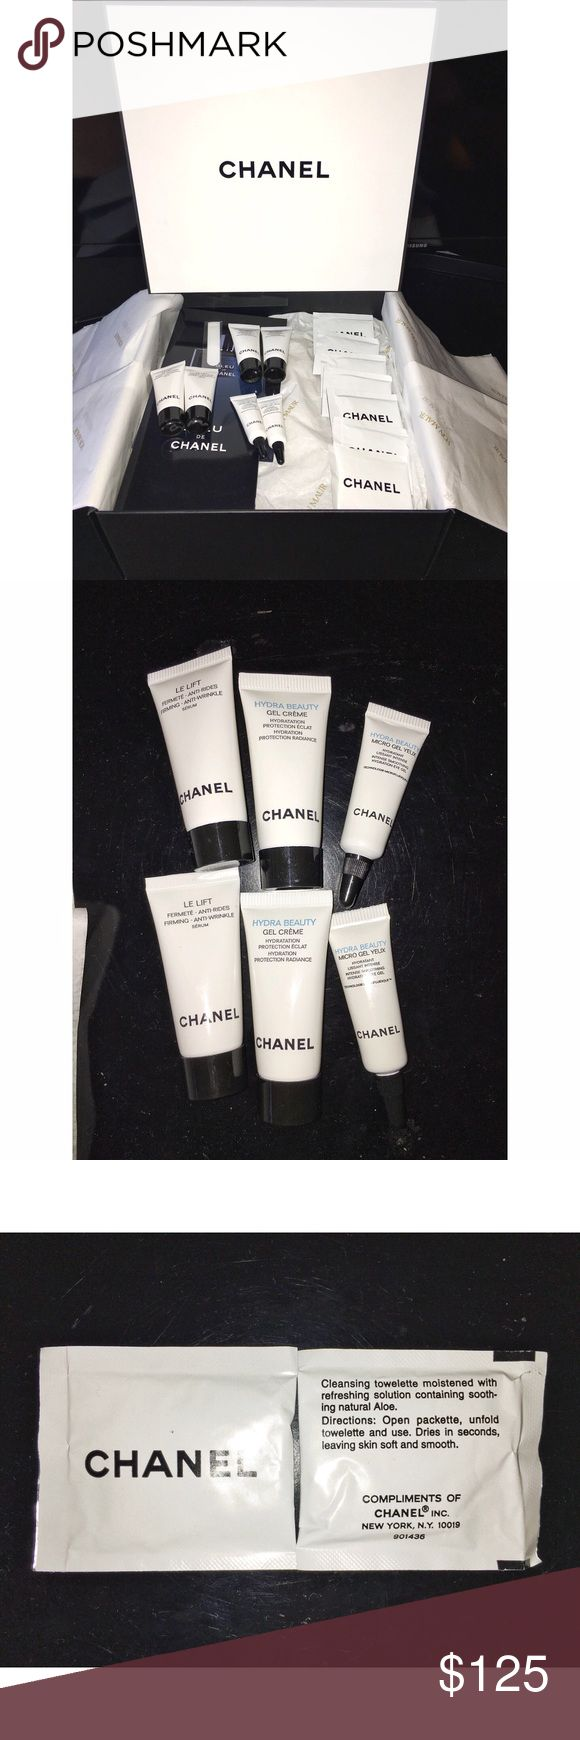 New CHANEL Skincare Bundle 🖤 Brand new chanel gift set all items are new never opened. Bundle comes with: 1 brand new mint condition gift box, 2 Bleu De Chanel cologne samples, 2 5ml Le Lift anti wrinkle serum ($60), 2 5ml Hyrda Beauty Gel Creme ($18), 2 3ml Hydra Beauty Micro Gel Yeux ($28) , and 7 rare Chanel cleansing towelettes moistened with aloe. The prices in parentheses are what chanel.com is pricing those by amount. This a great deal! Other free samples with purchase dedicated to…